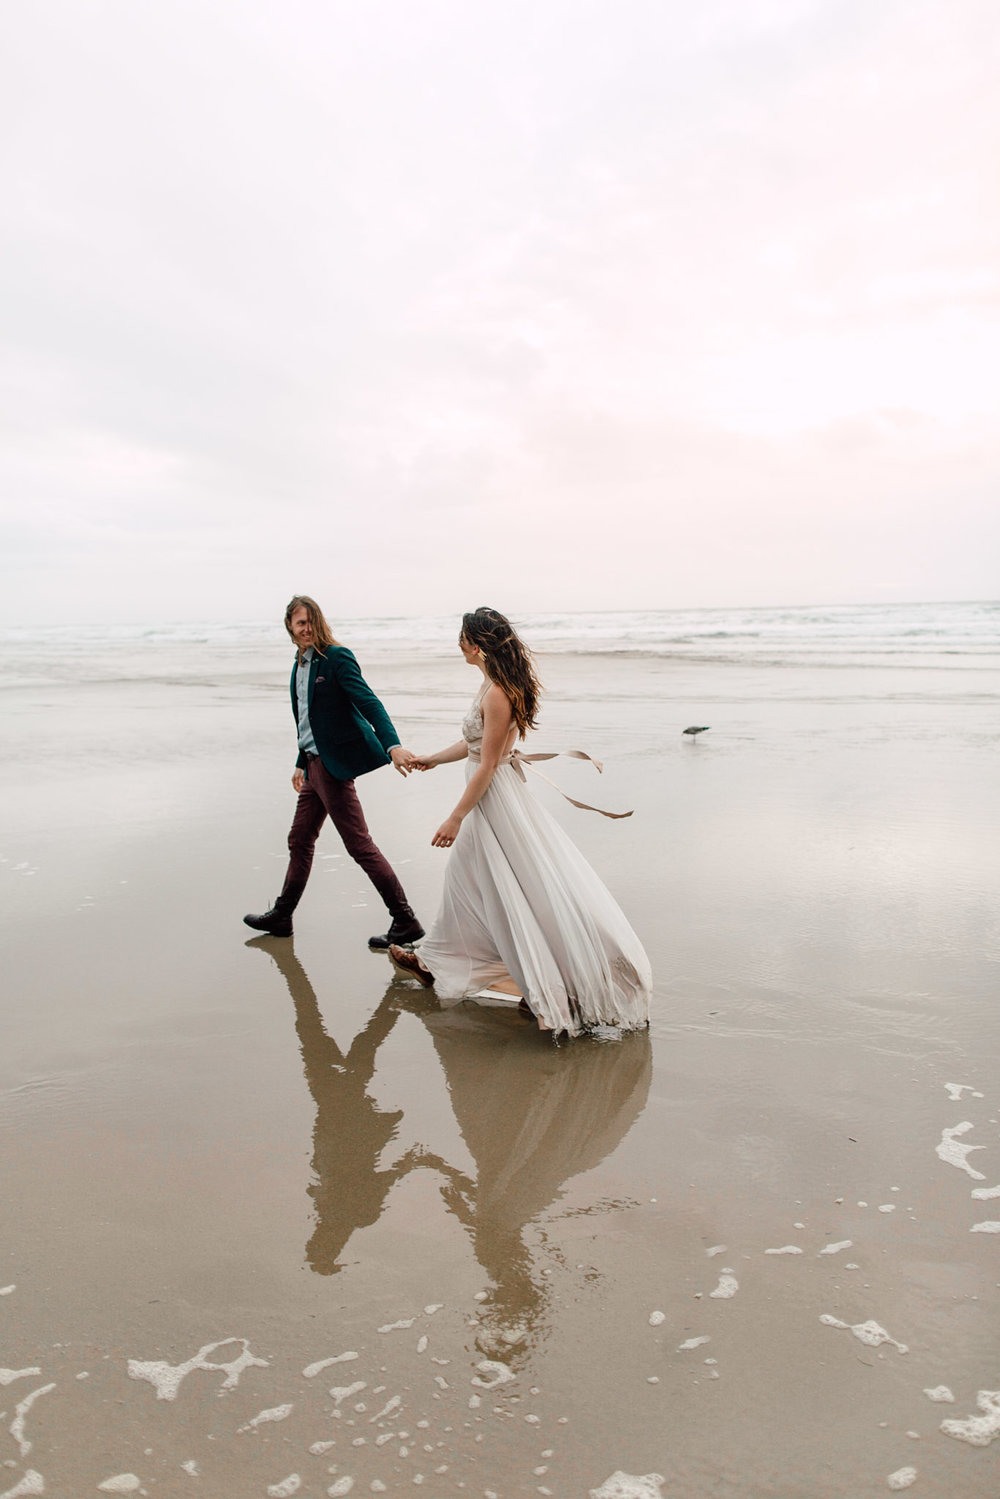 Oregon-Coast-Manzanita-Beach-Engagement-Pia-Anna-Christian-Wedding-Photography-PNW-GB-21.jpg